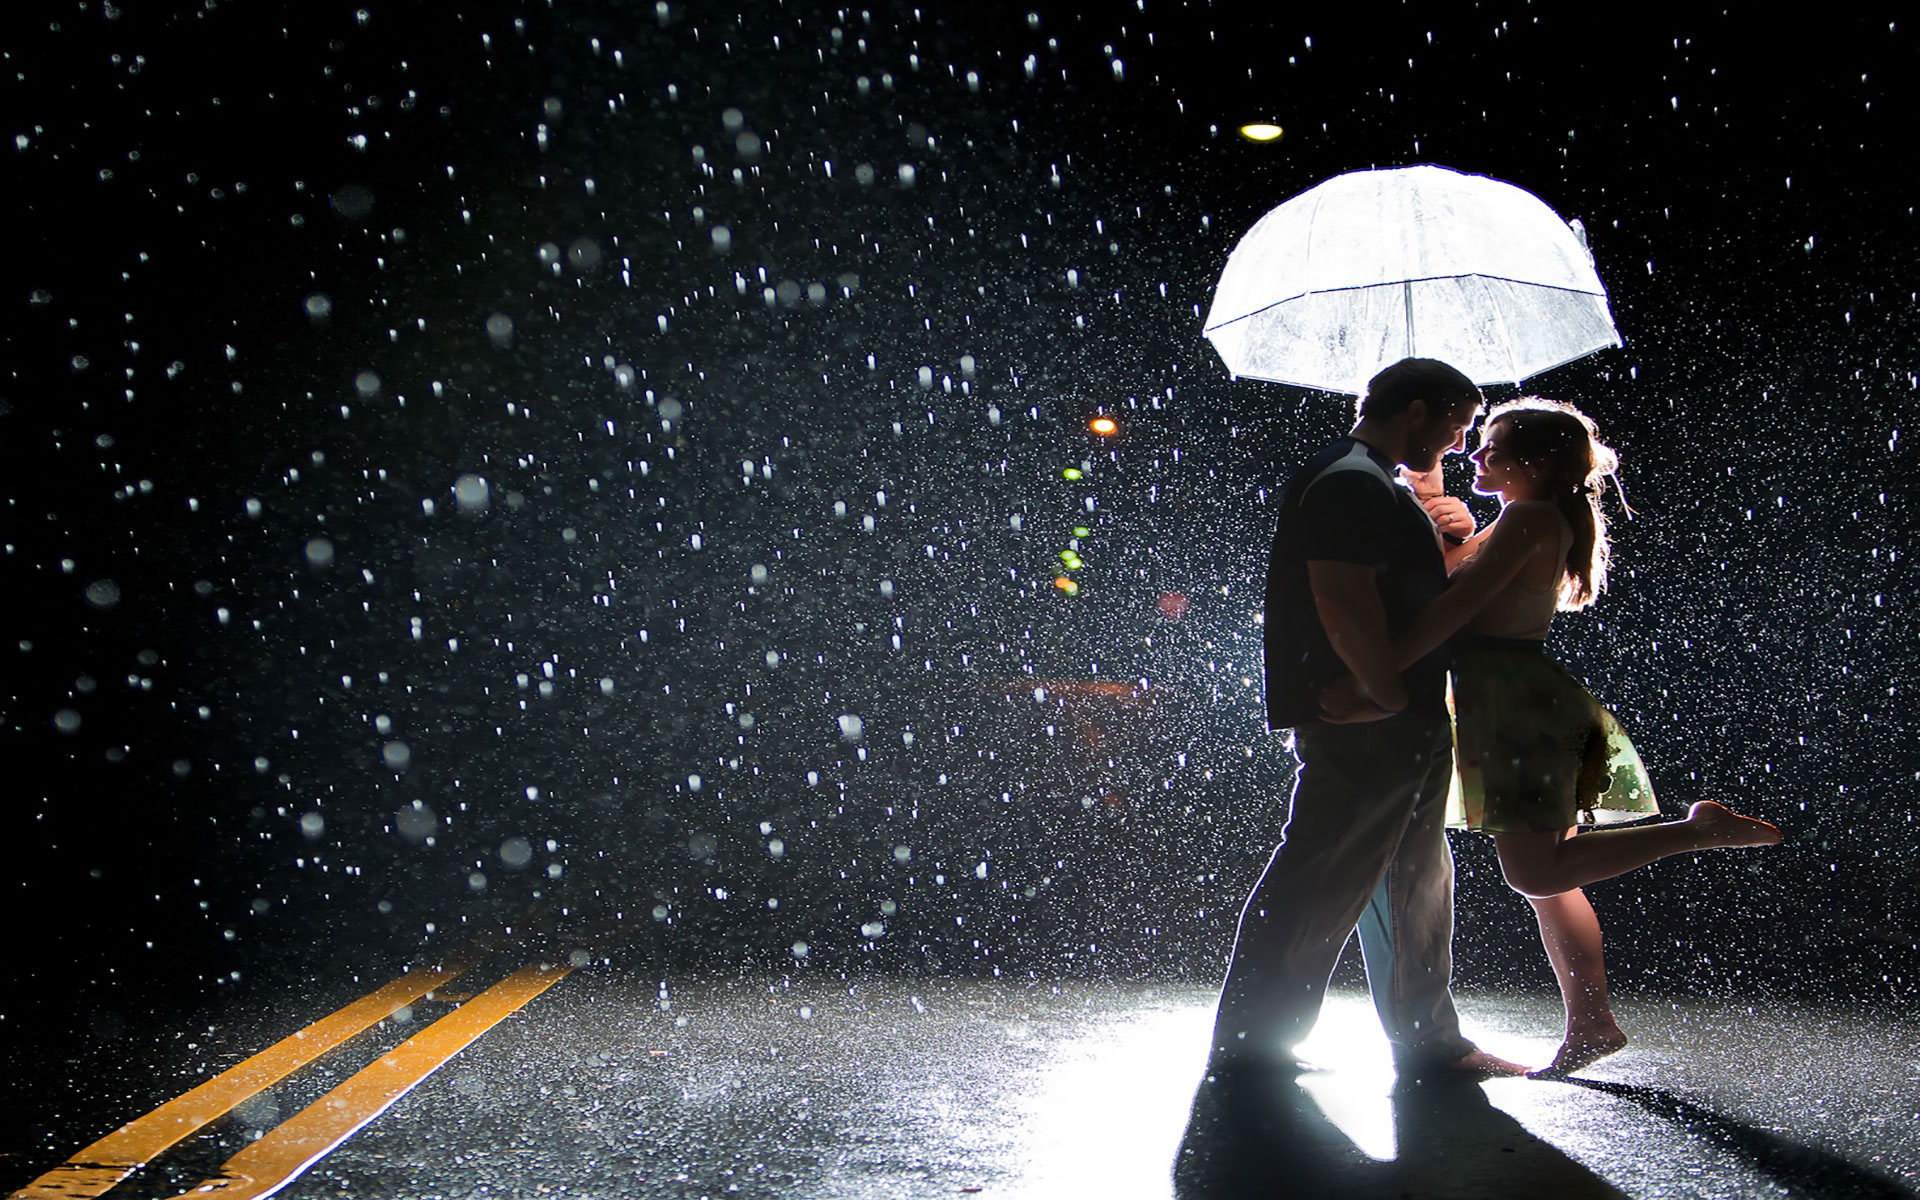 20 Love Couple S Romance In The Rain Wallpapers